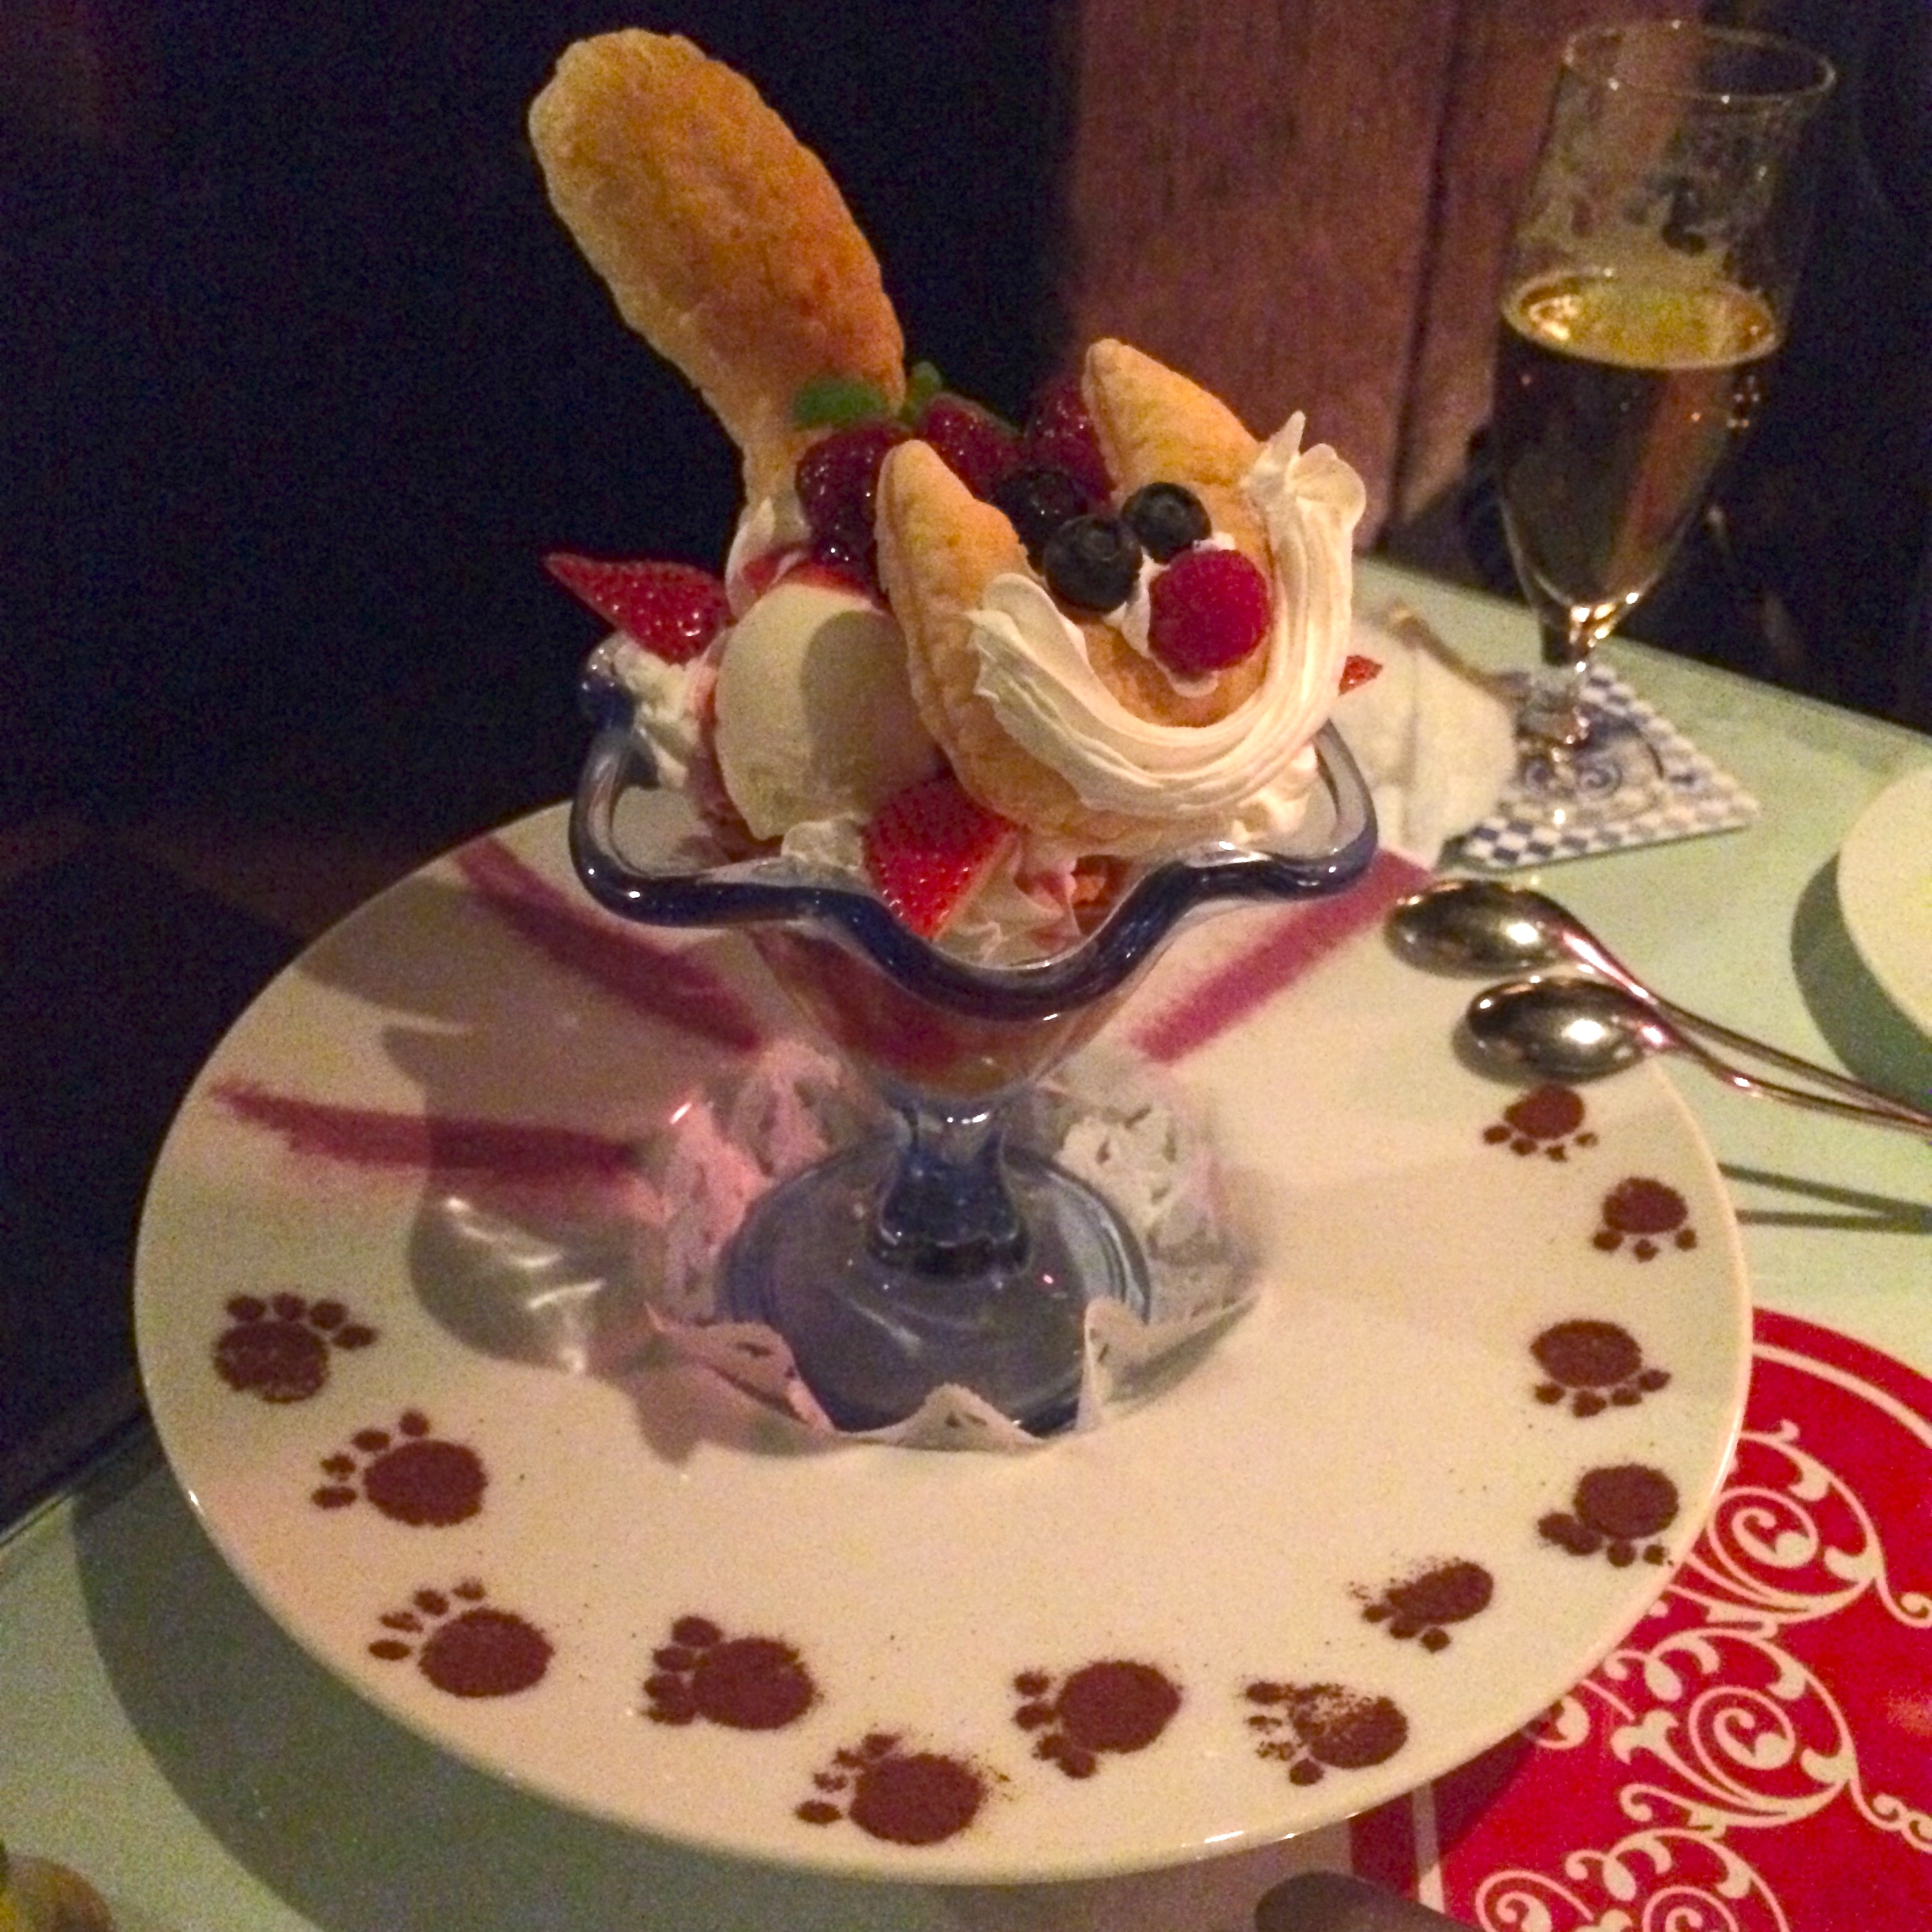 Alice in Wonderland Cafe in Ginza 2013